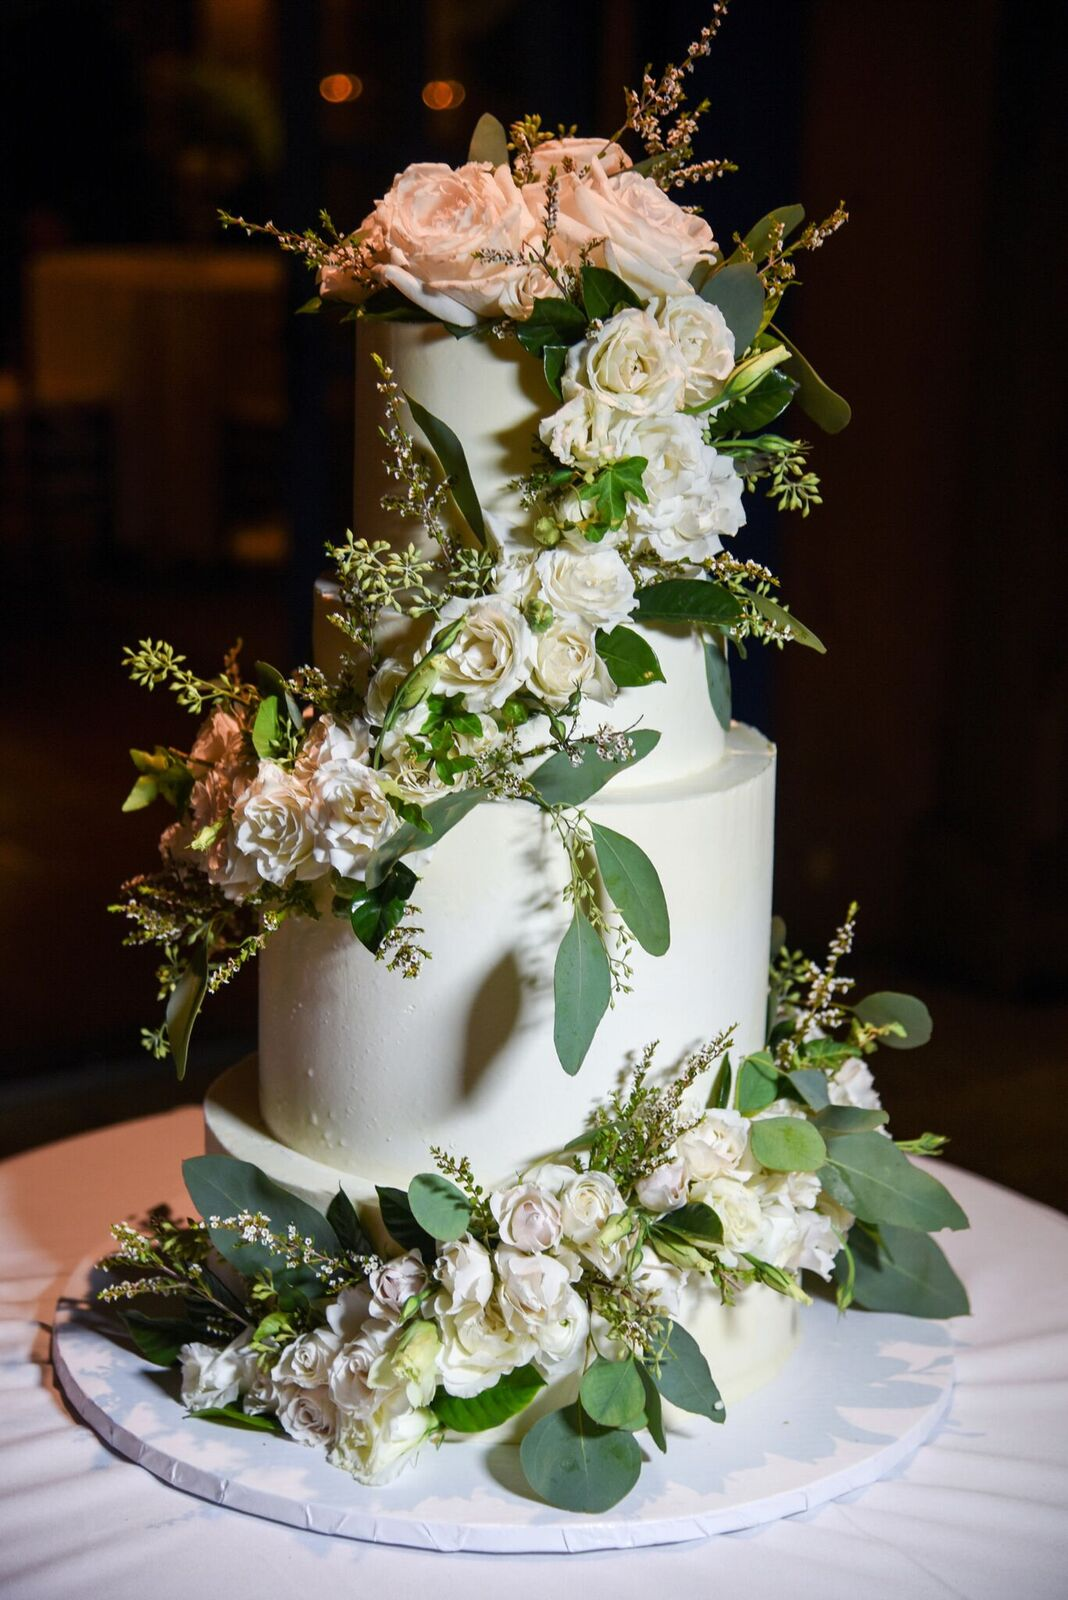 This gorgeous boho chic wedding cake was perfect for a garden summer wedding we planned at Grounds for Sculpture. Check out the white and green details in the blog and get inspired for your own wedding day!